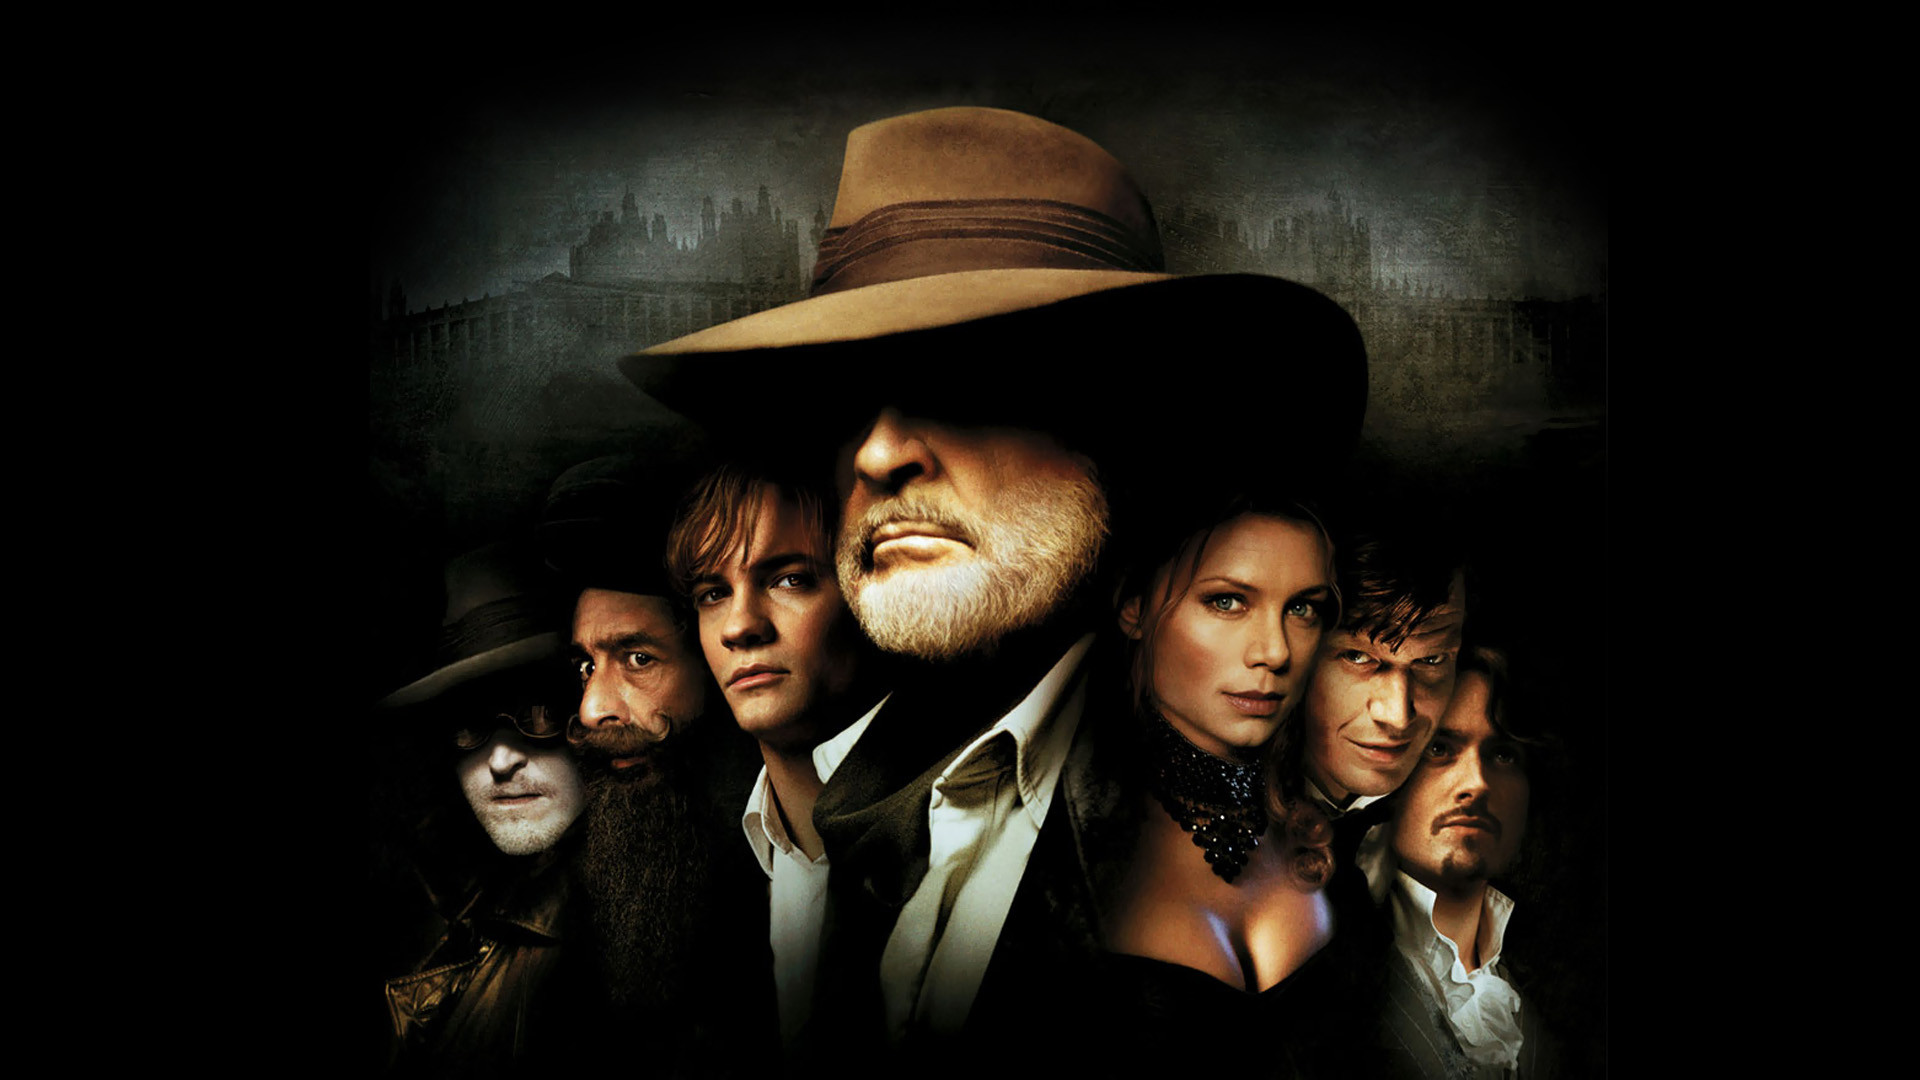 A Female Centric League Of Extraordinary Gentlemen Reboot Is On The Way